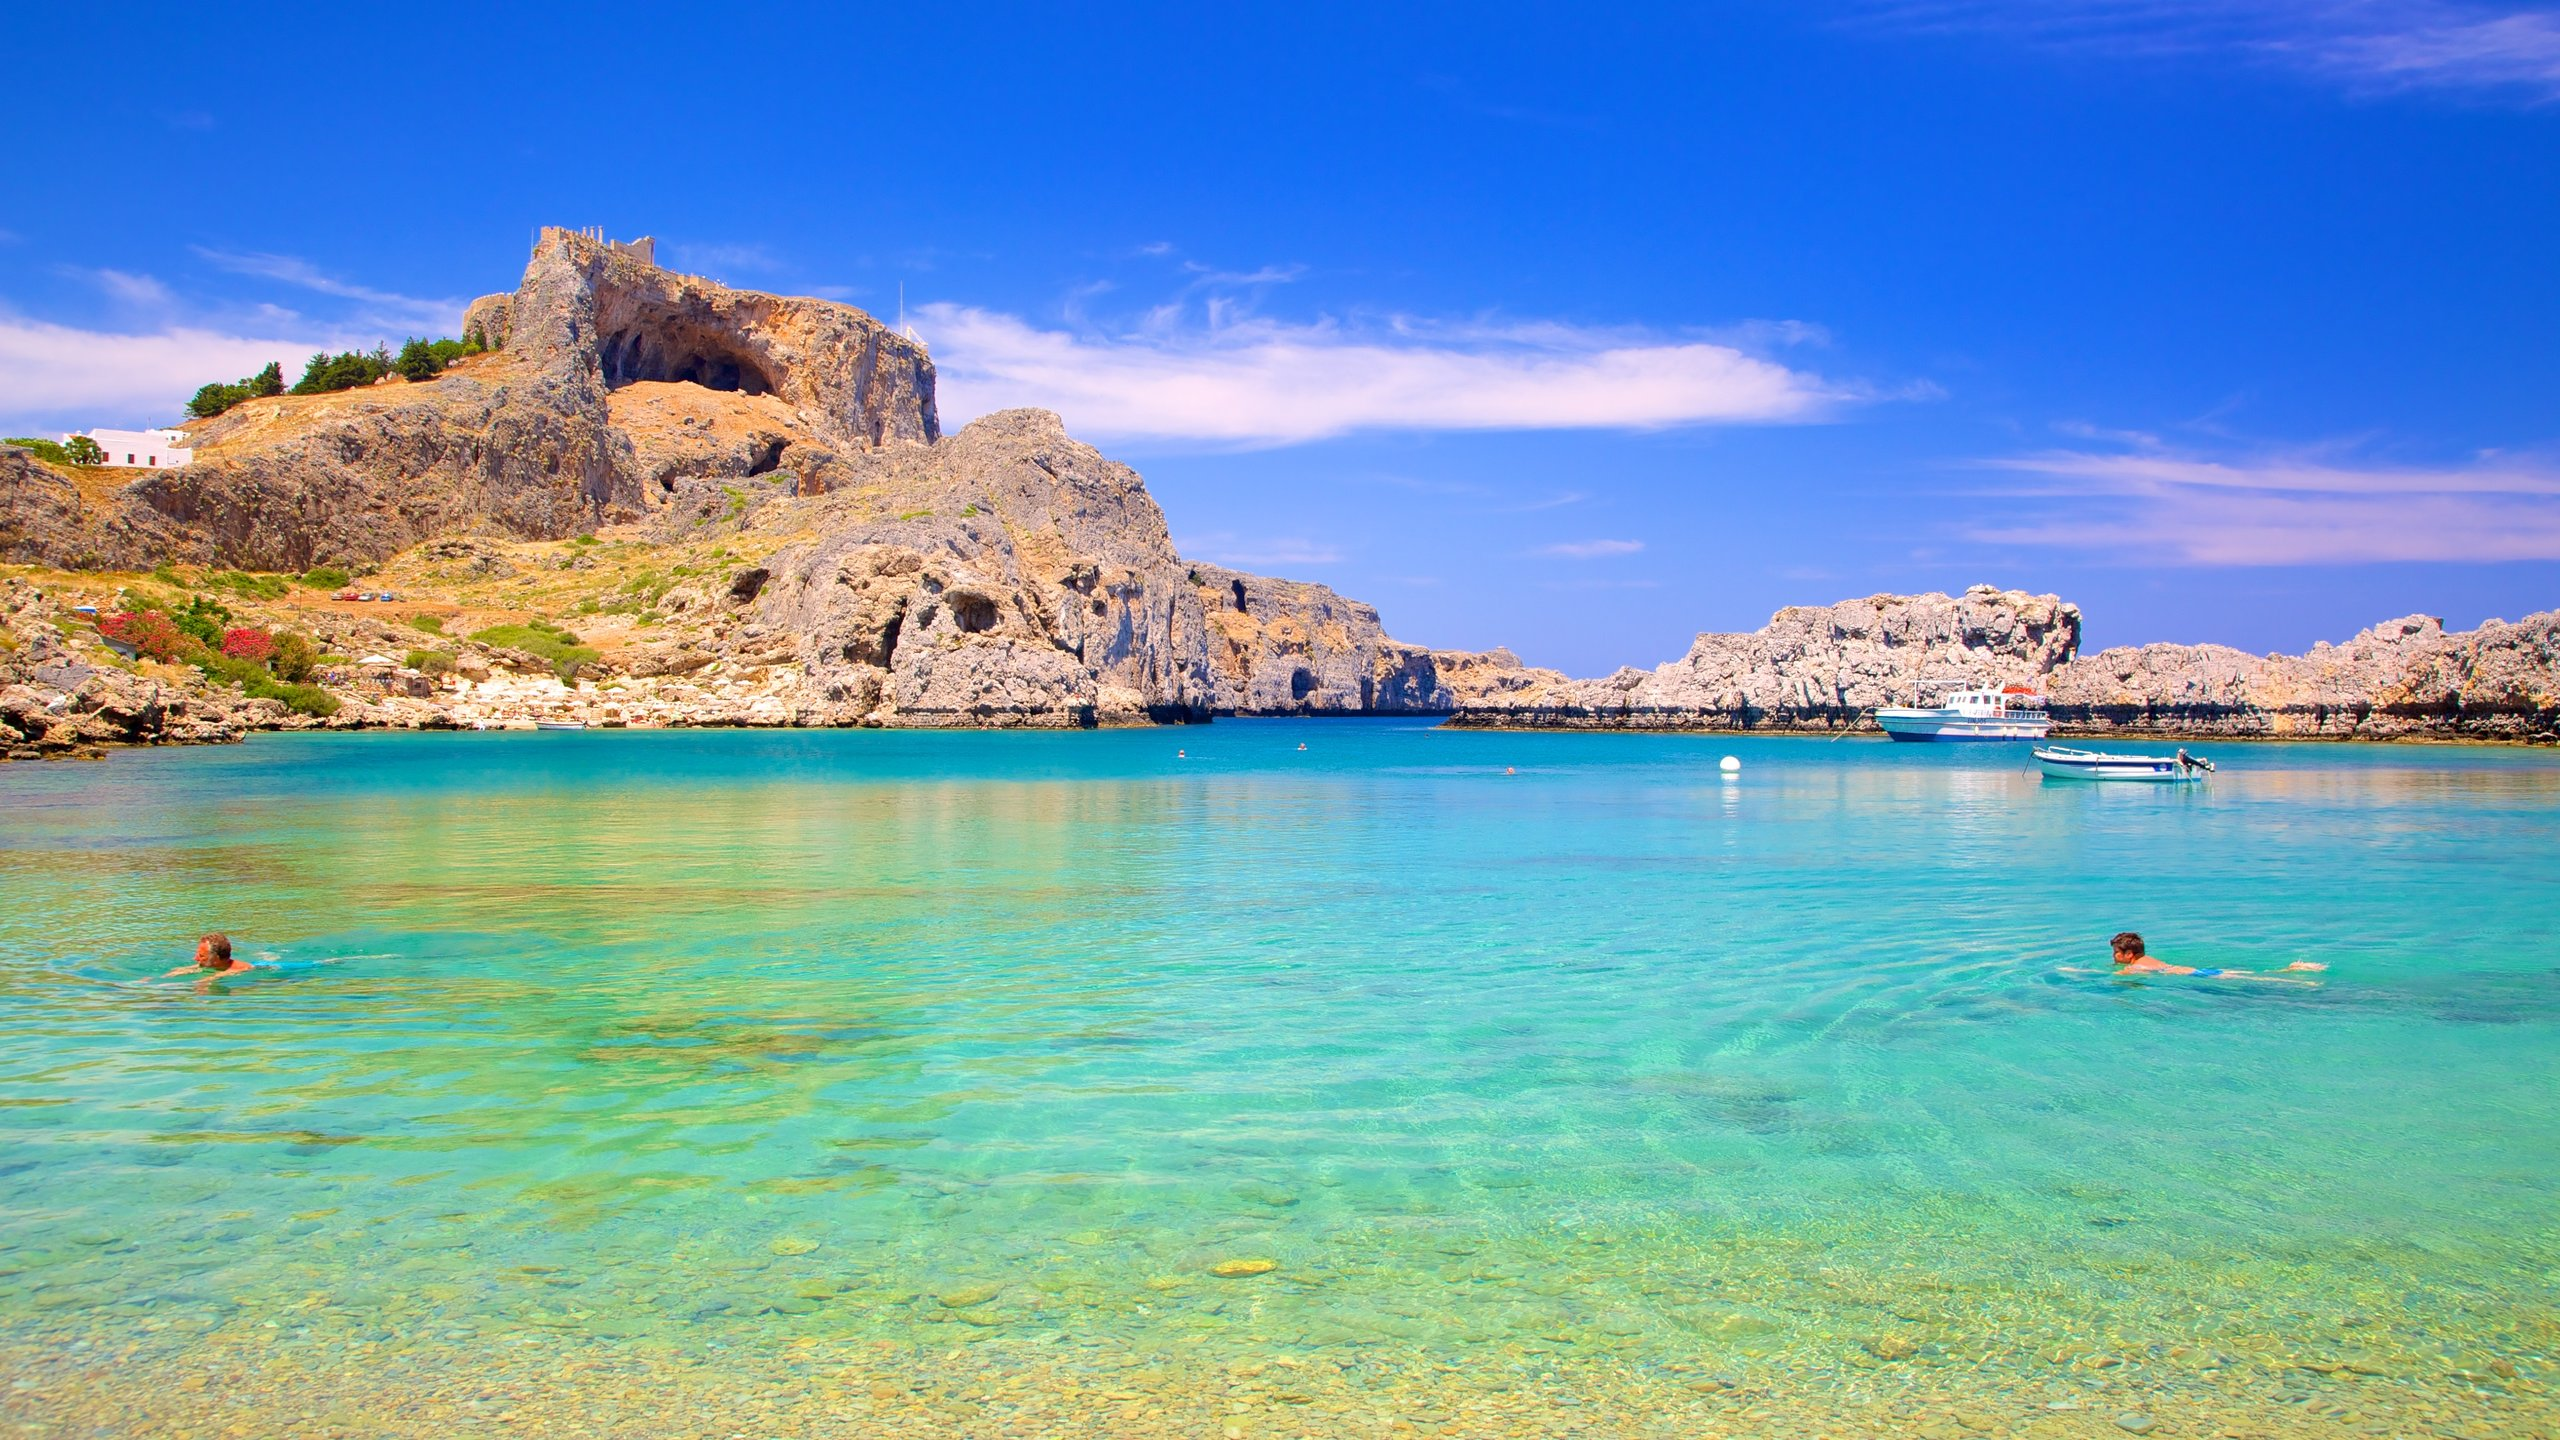 Soak up the sun on this picturesque sandy strip, where St. Paul is said to have landed when he came to preach to the people of Rhodes.